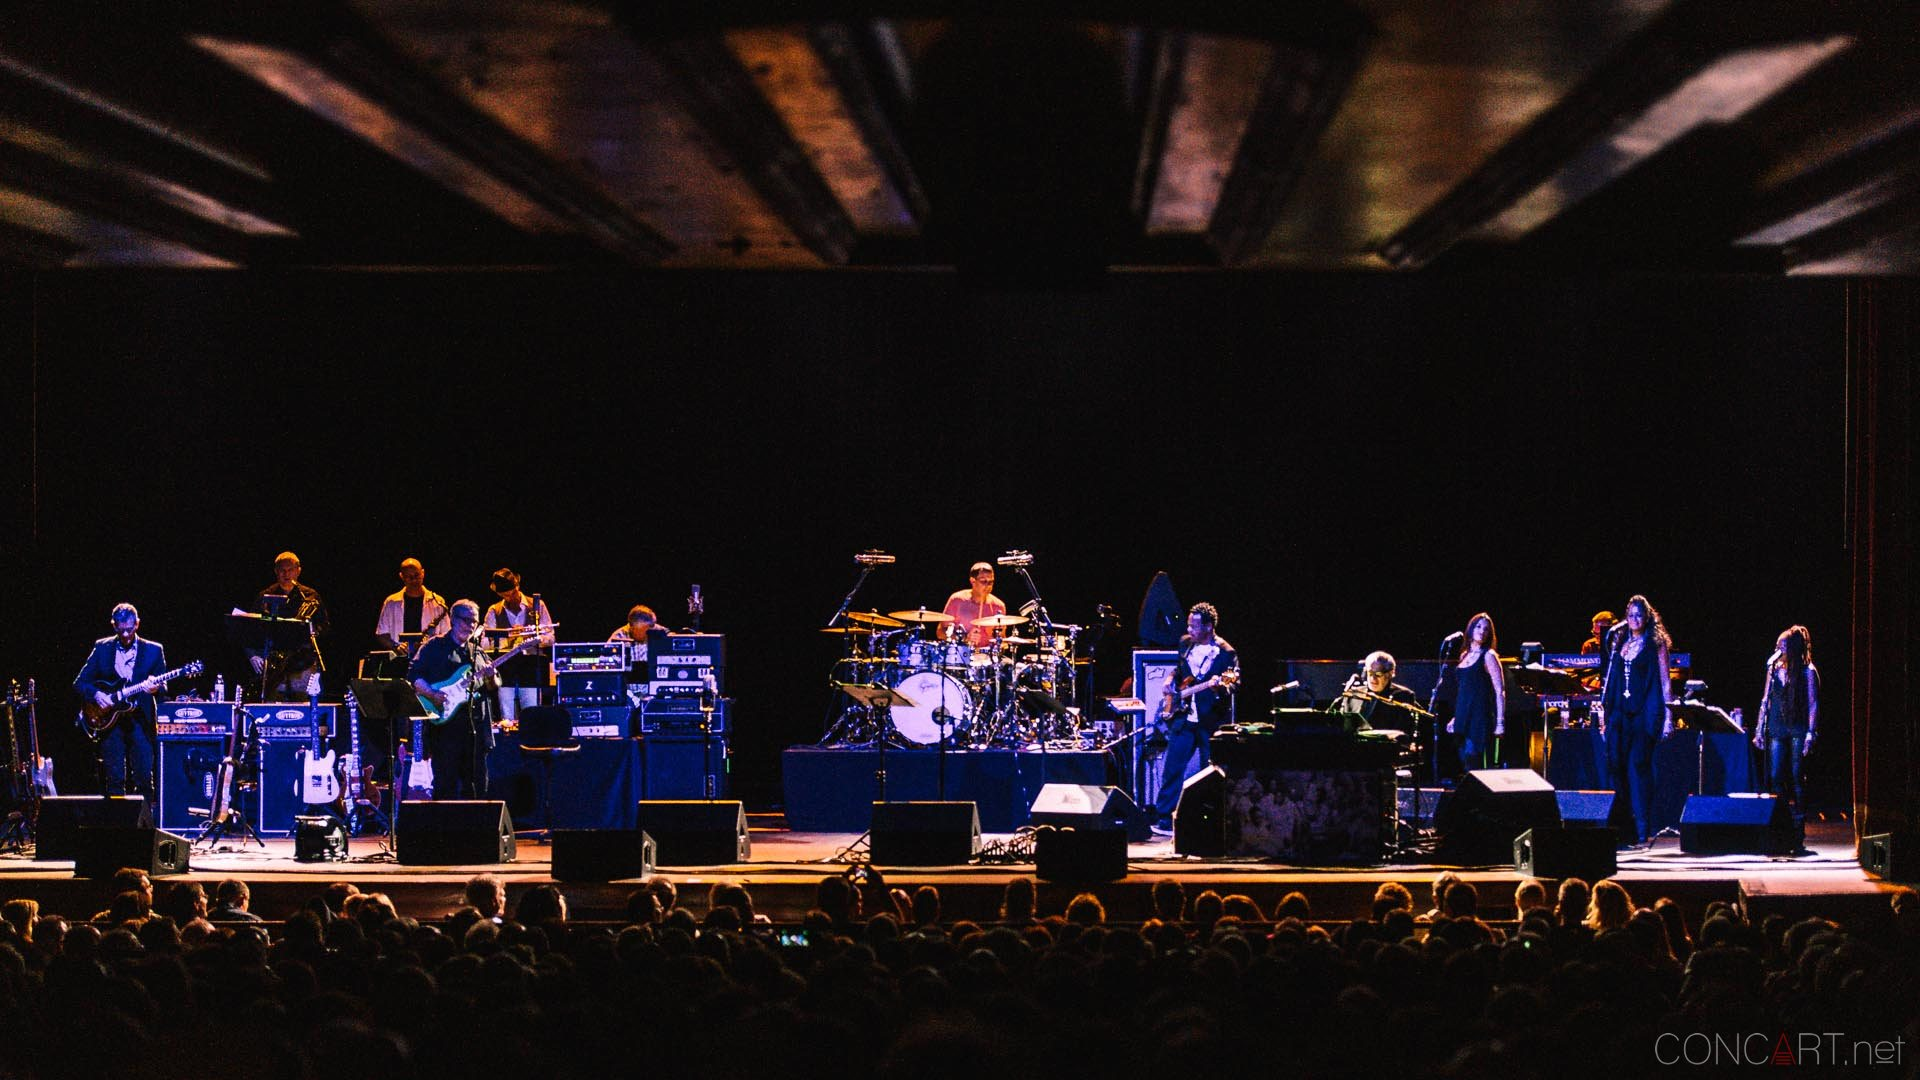 steely_dan_live_old_national_murat_theatre_indianapolis_2013-16